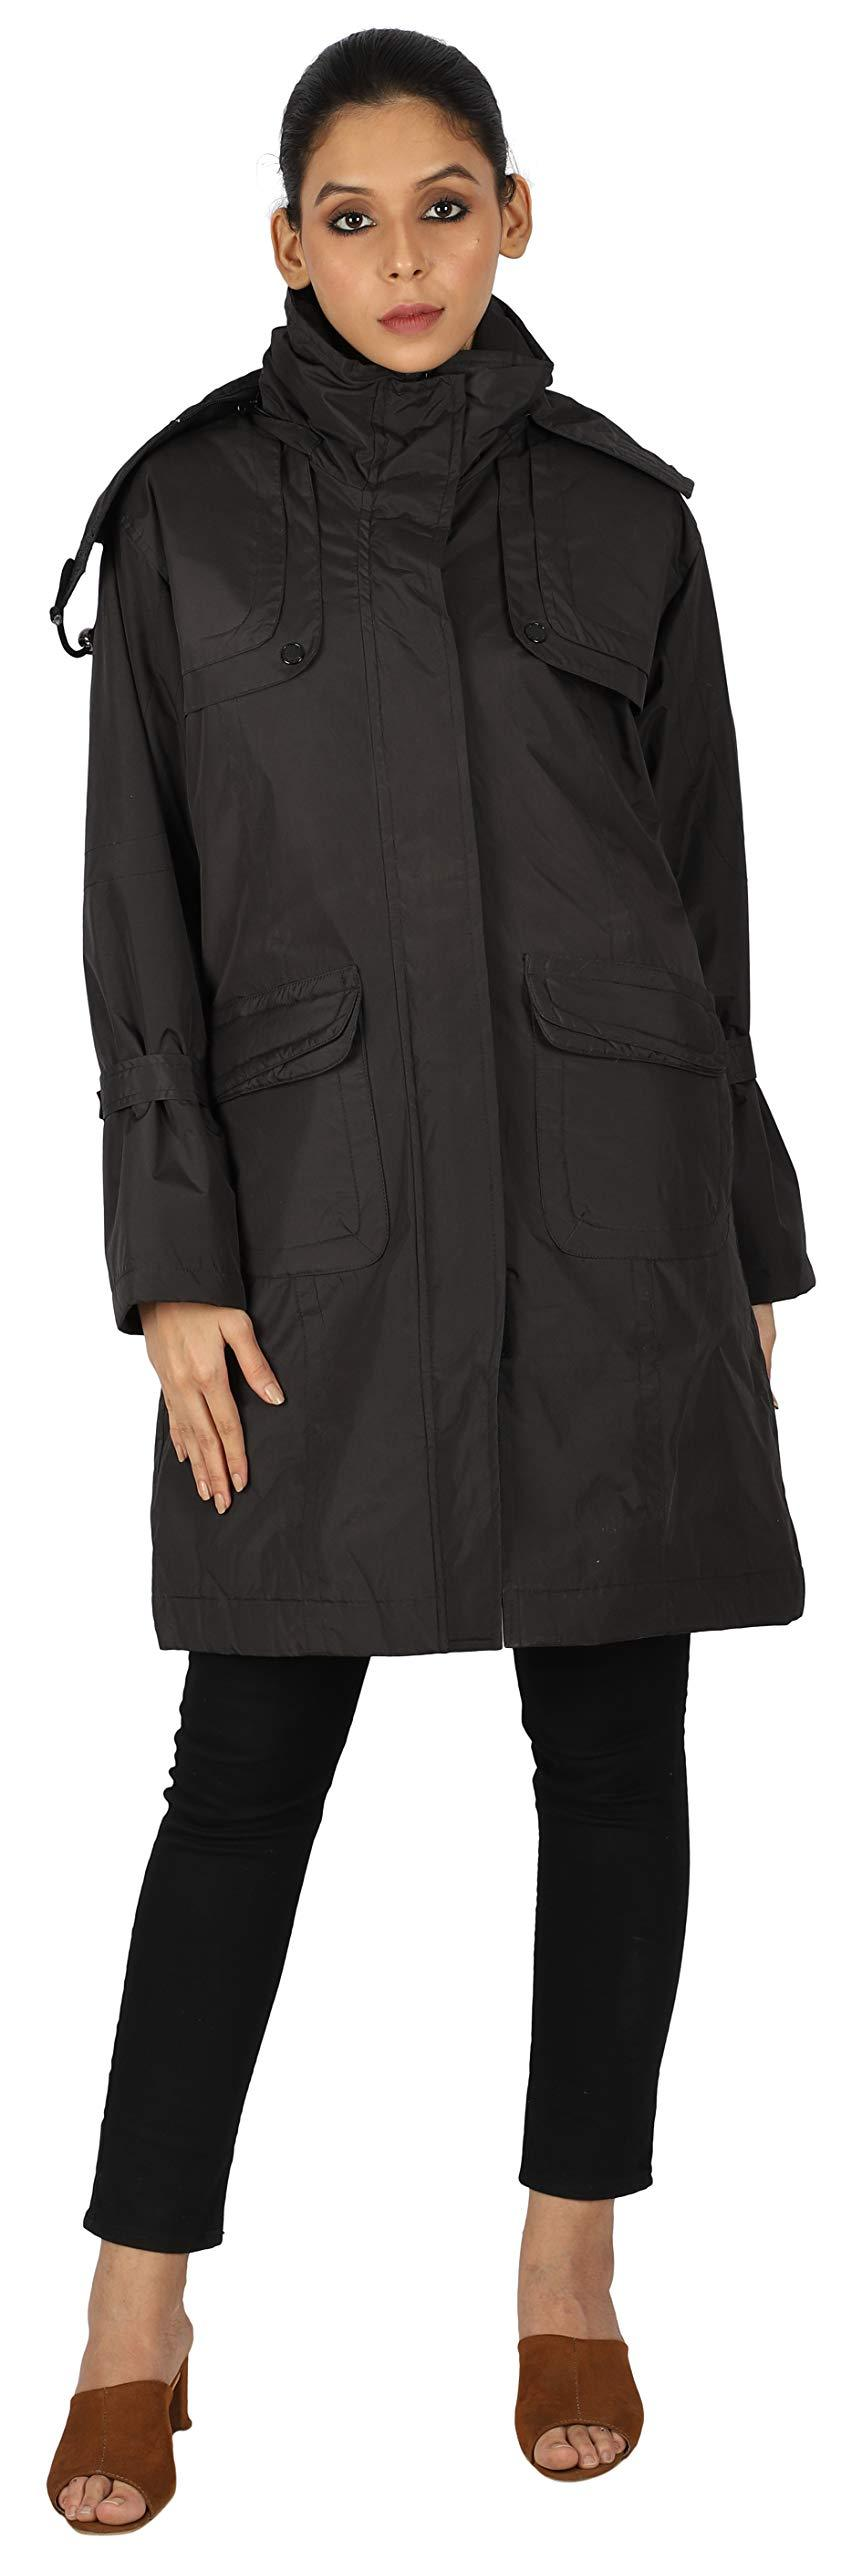 Romano nx Women's Waterproof Snow Jacket for Minus Degree romanonx.com 4XL